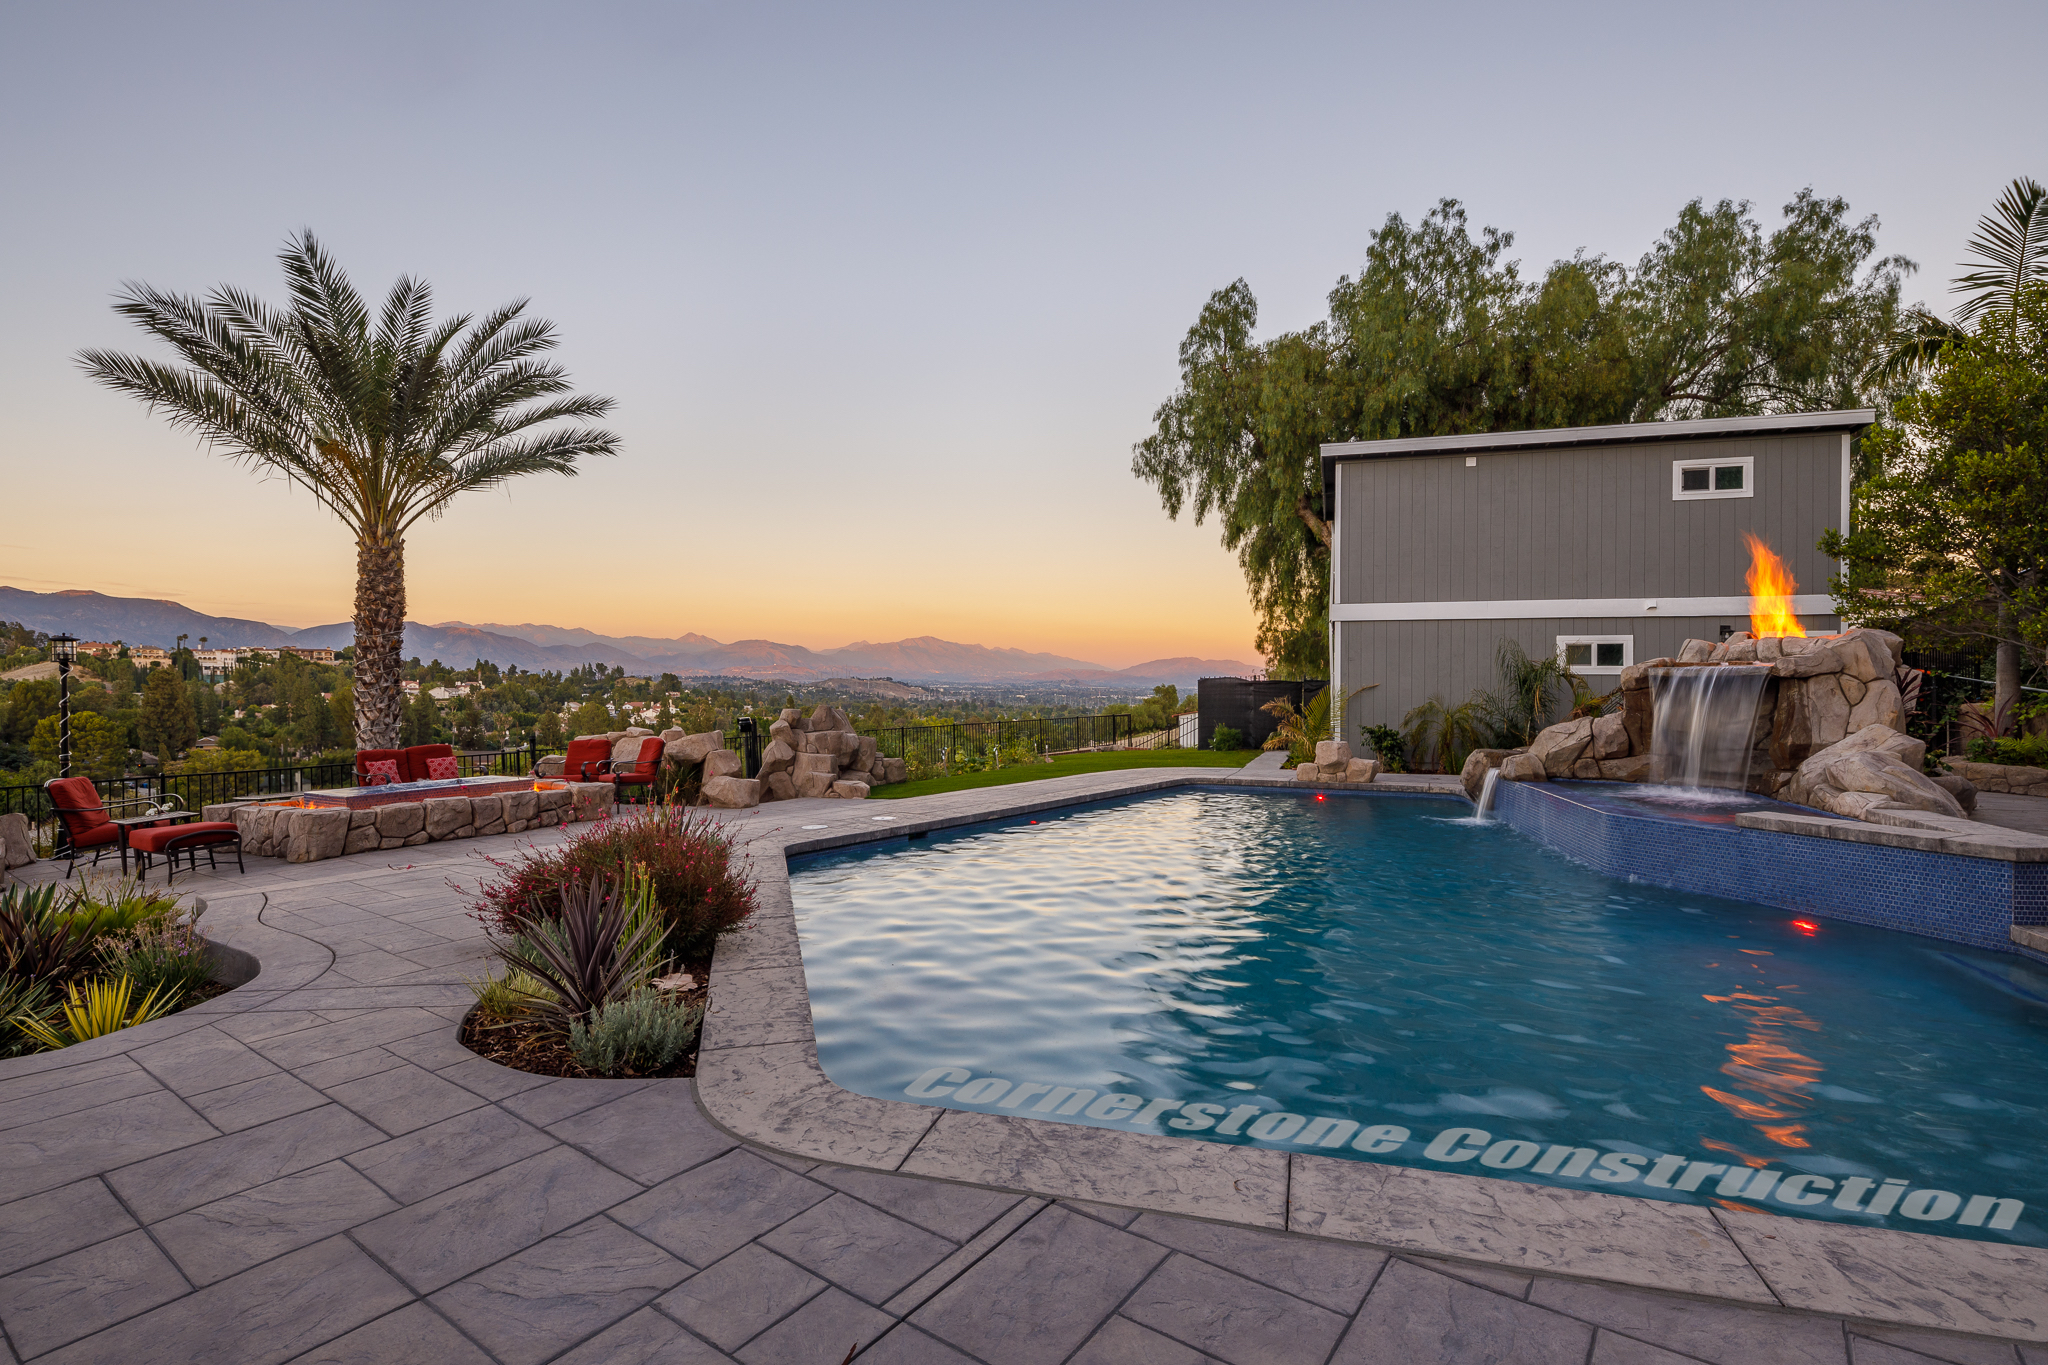 GeorgesHouse_Pool_Sunset.jpg